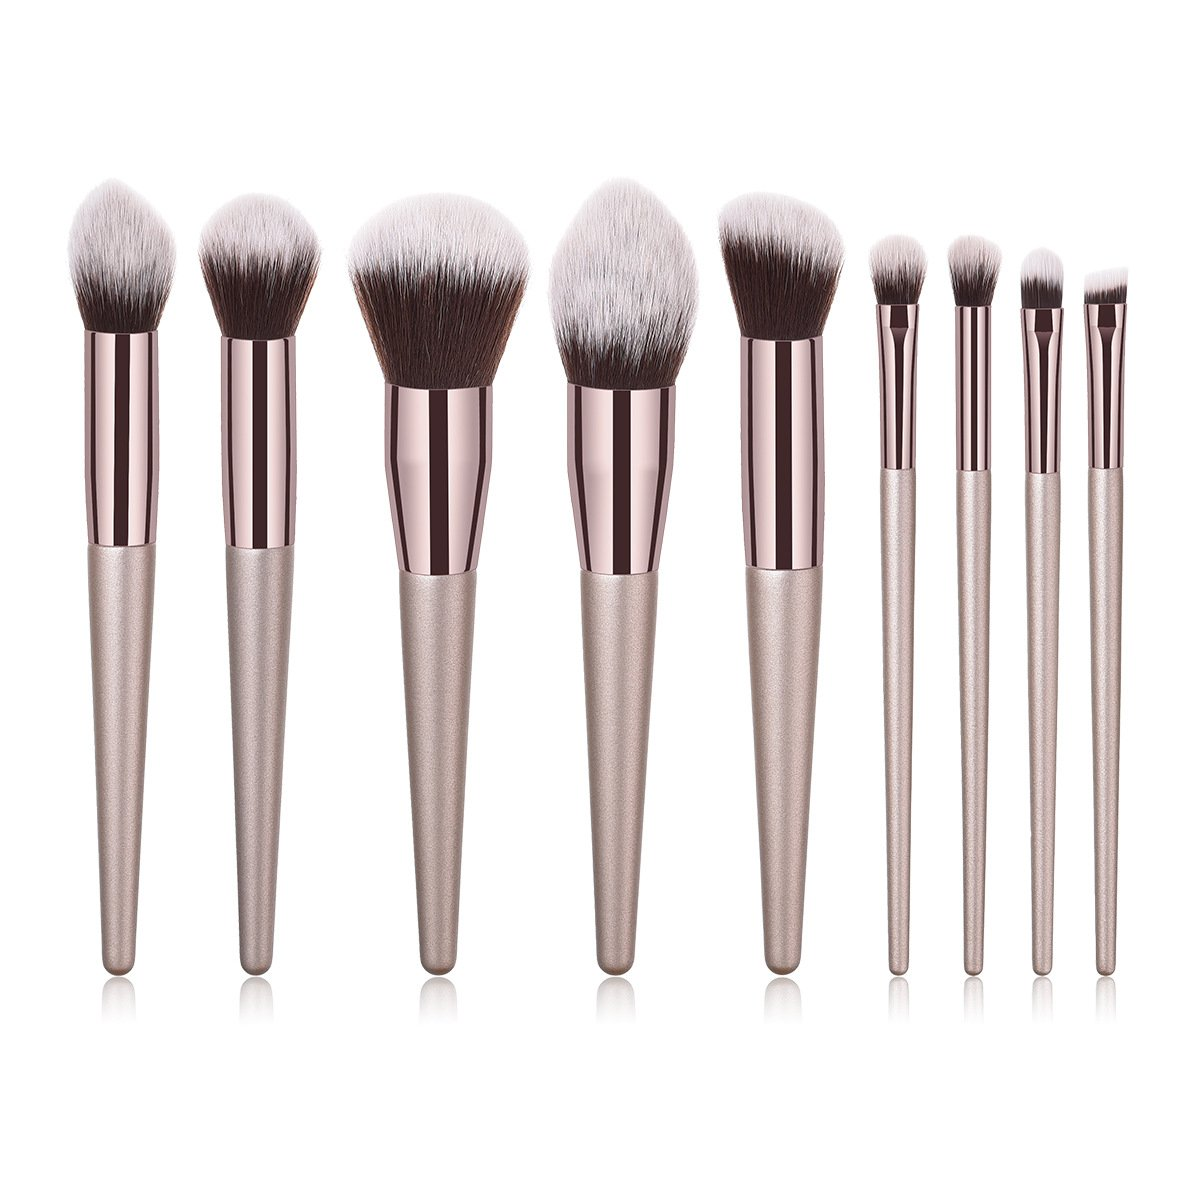 BBL 9PCs Professional Makeup Brush Set Premium Cosmetic Brushes for Foundation Powder Concealers Eye